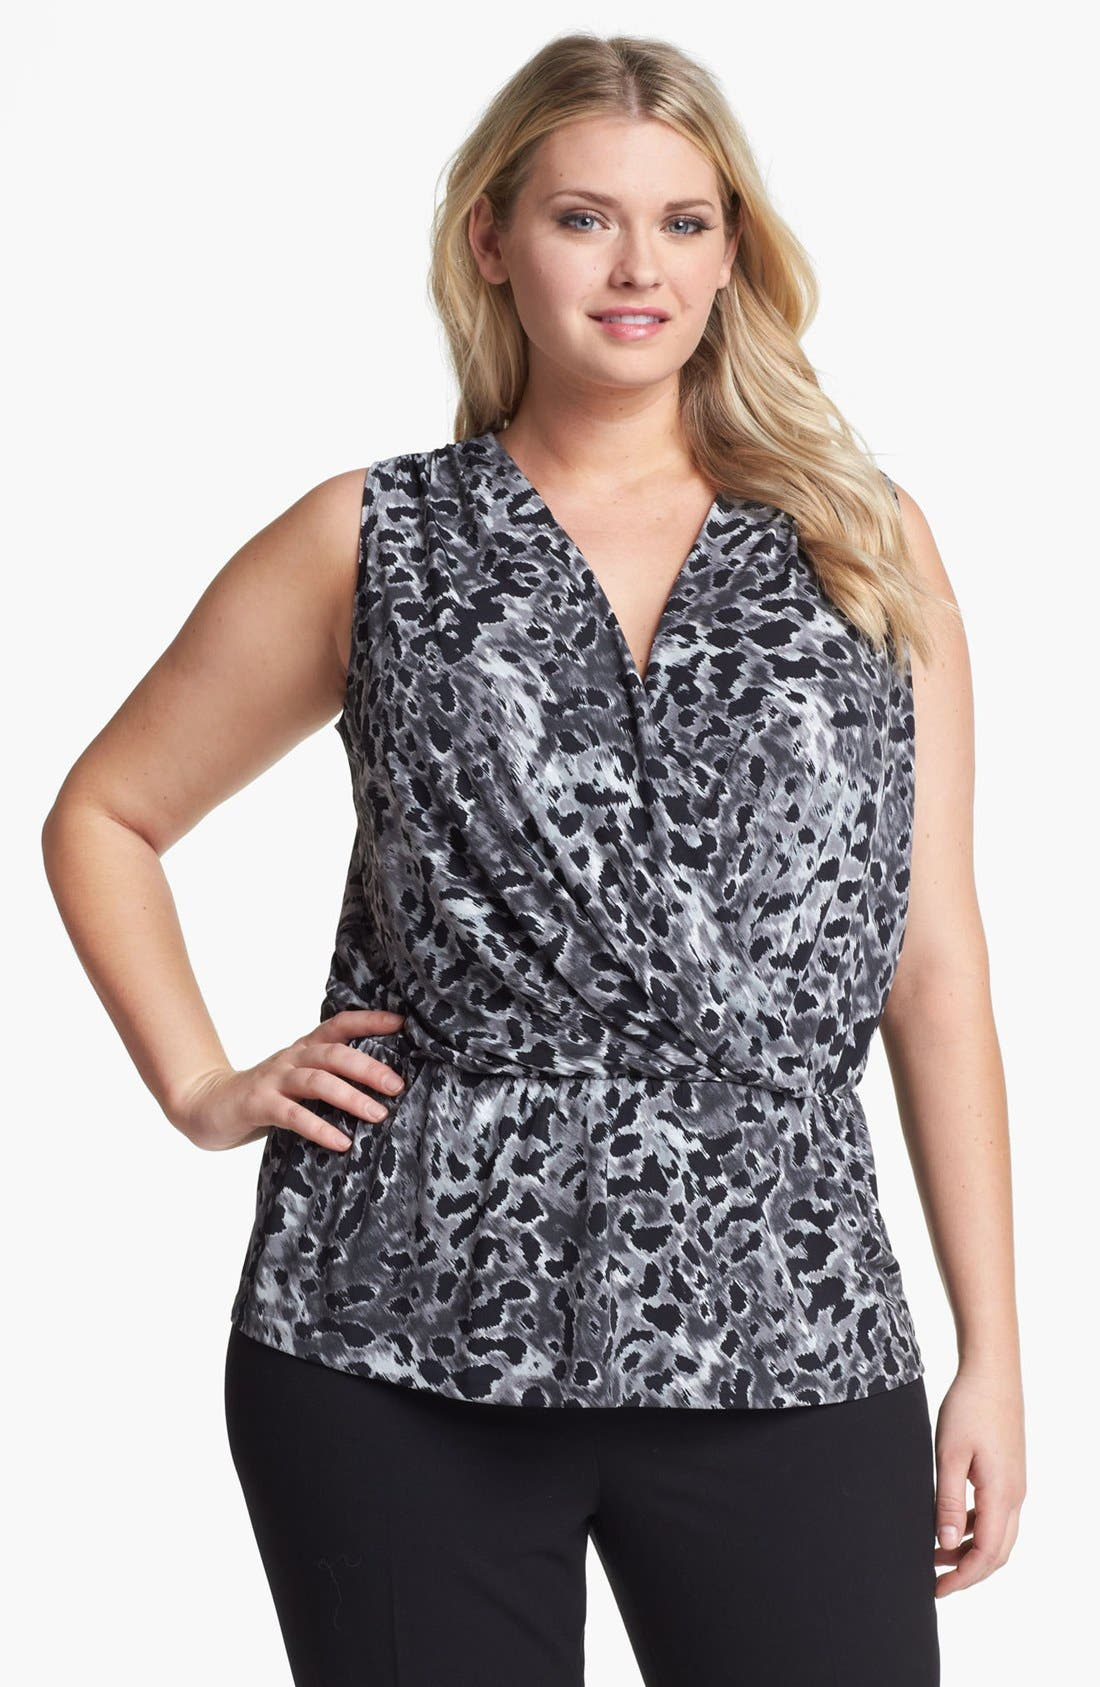 Alternate Image 1 Selected - Anne Klein Print Faux Wrap Top (Plus Size)